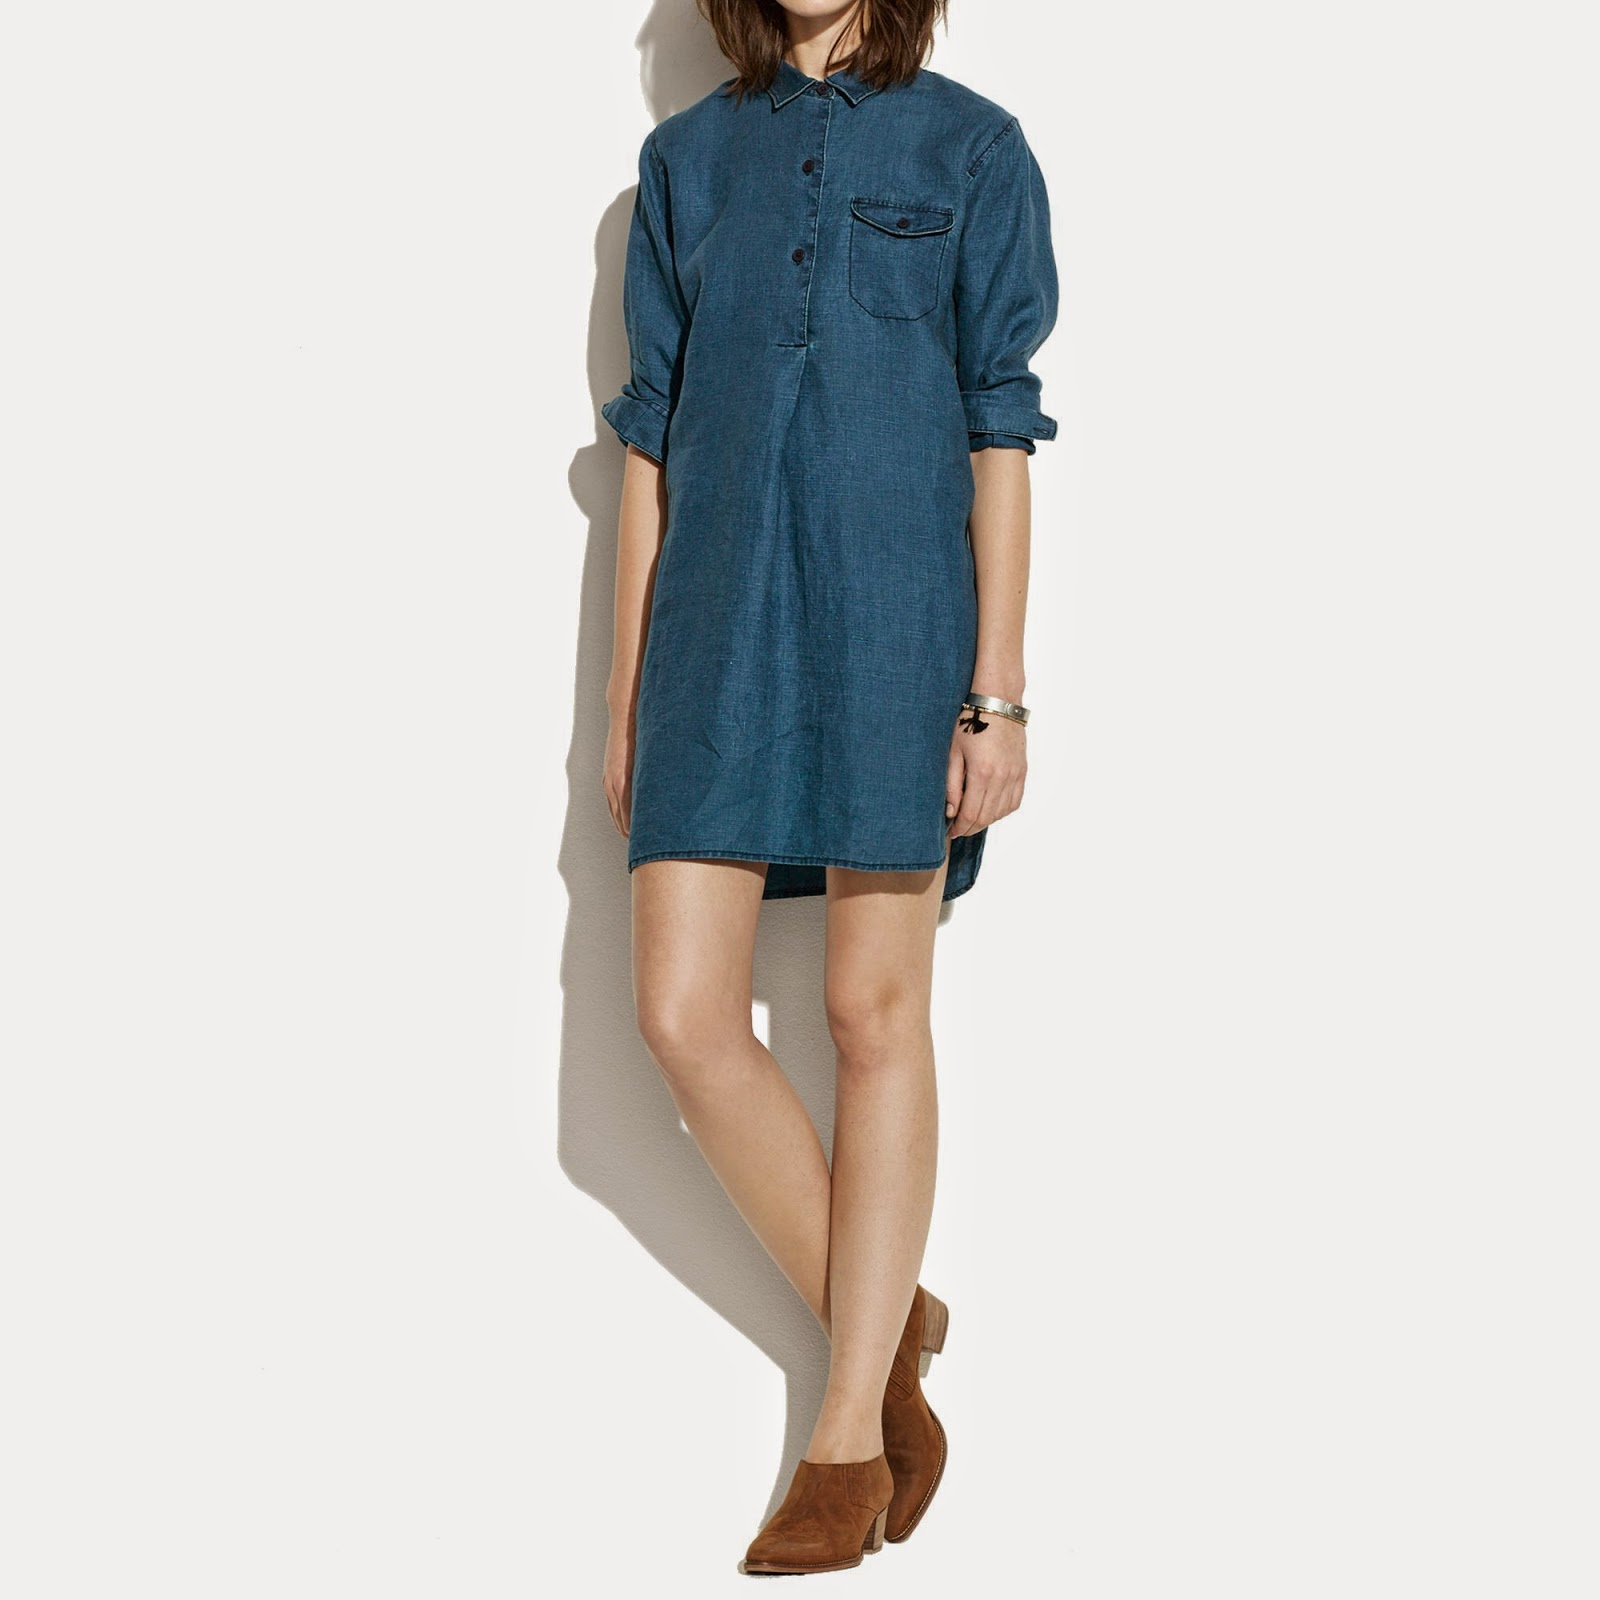 http://www.lyst.com/clothing/madewell-indigo-linen-longsleeve-tunic-dress-in-ultramarine/